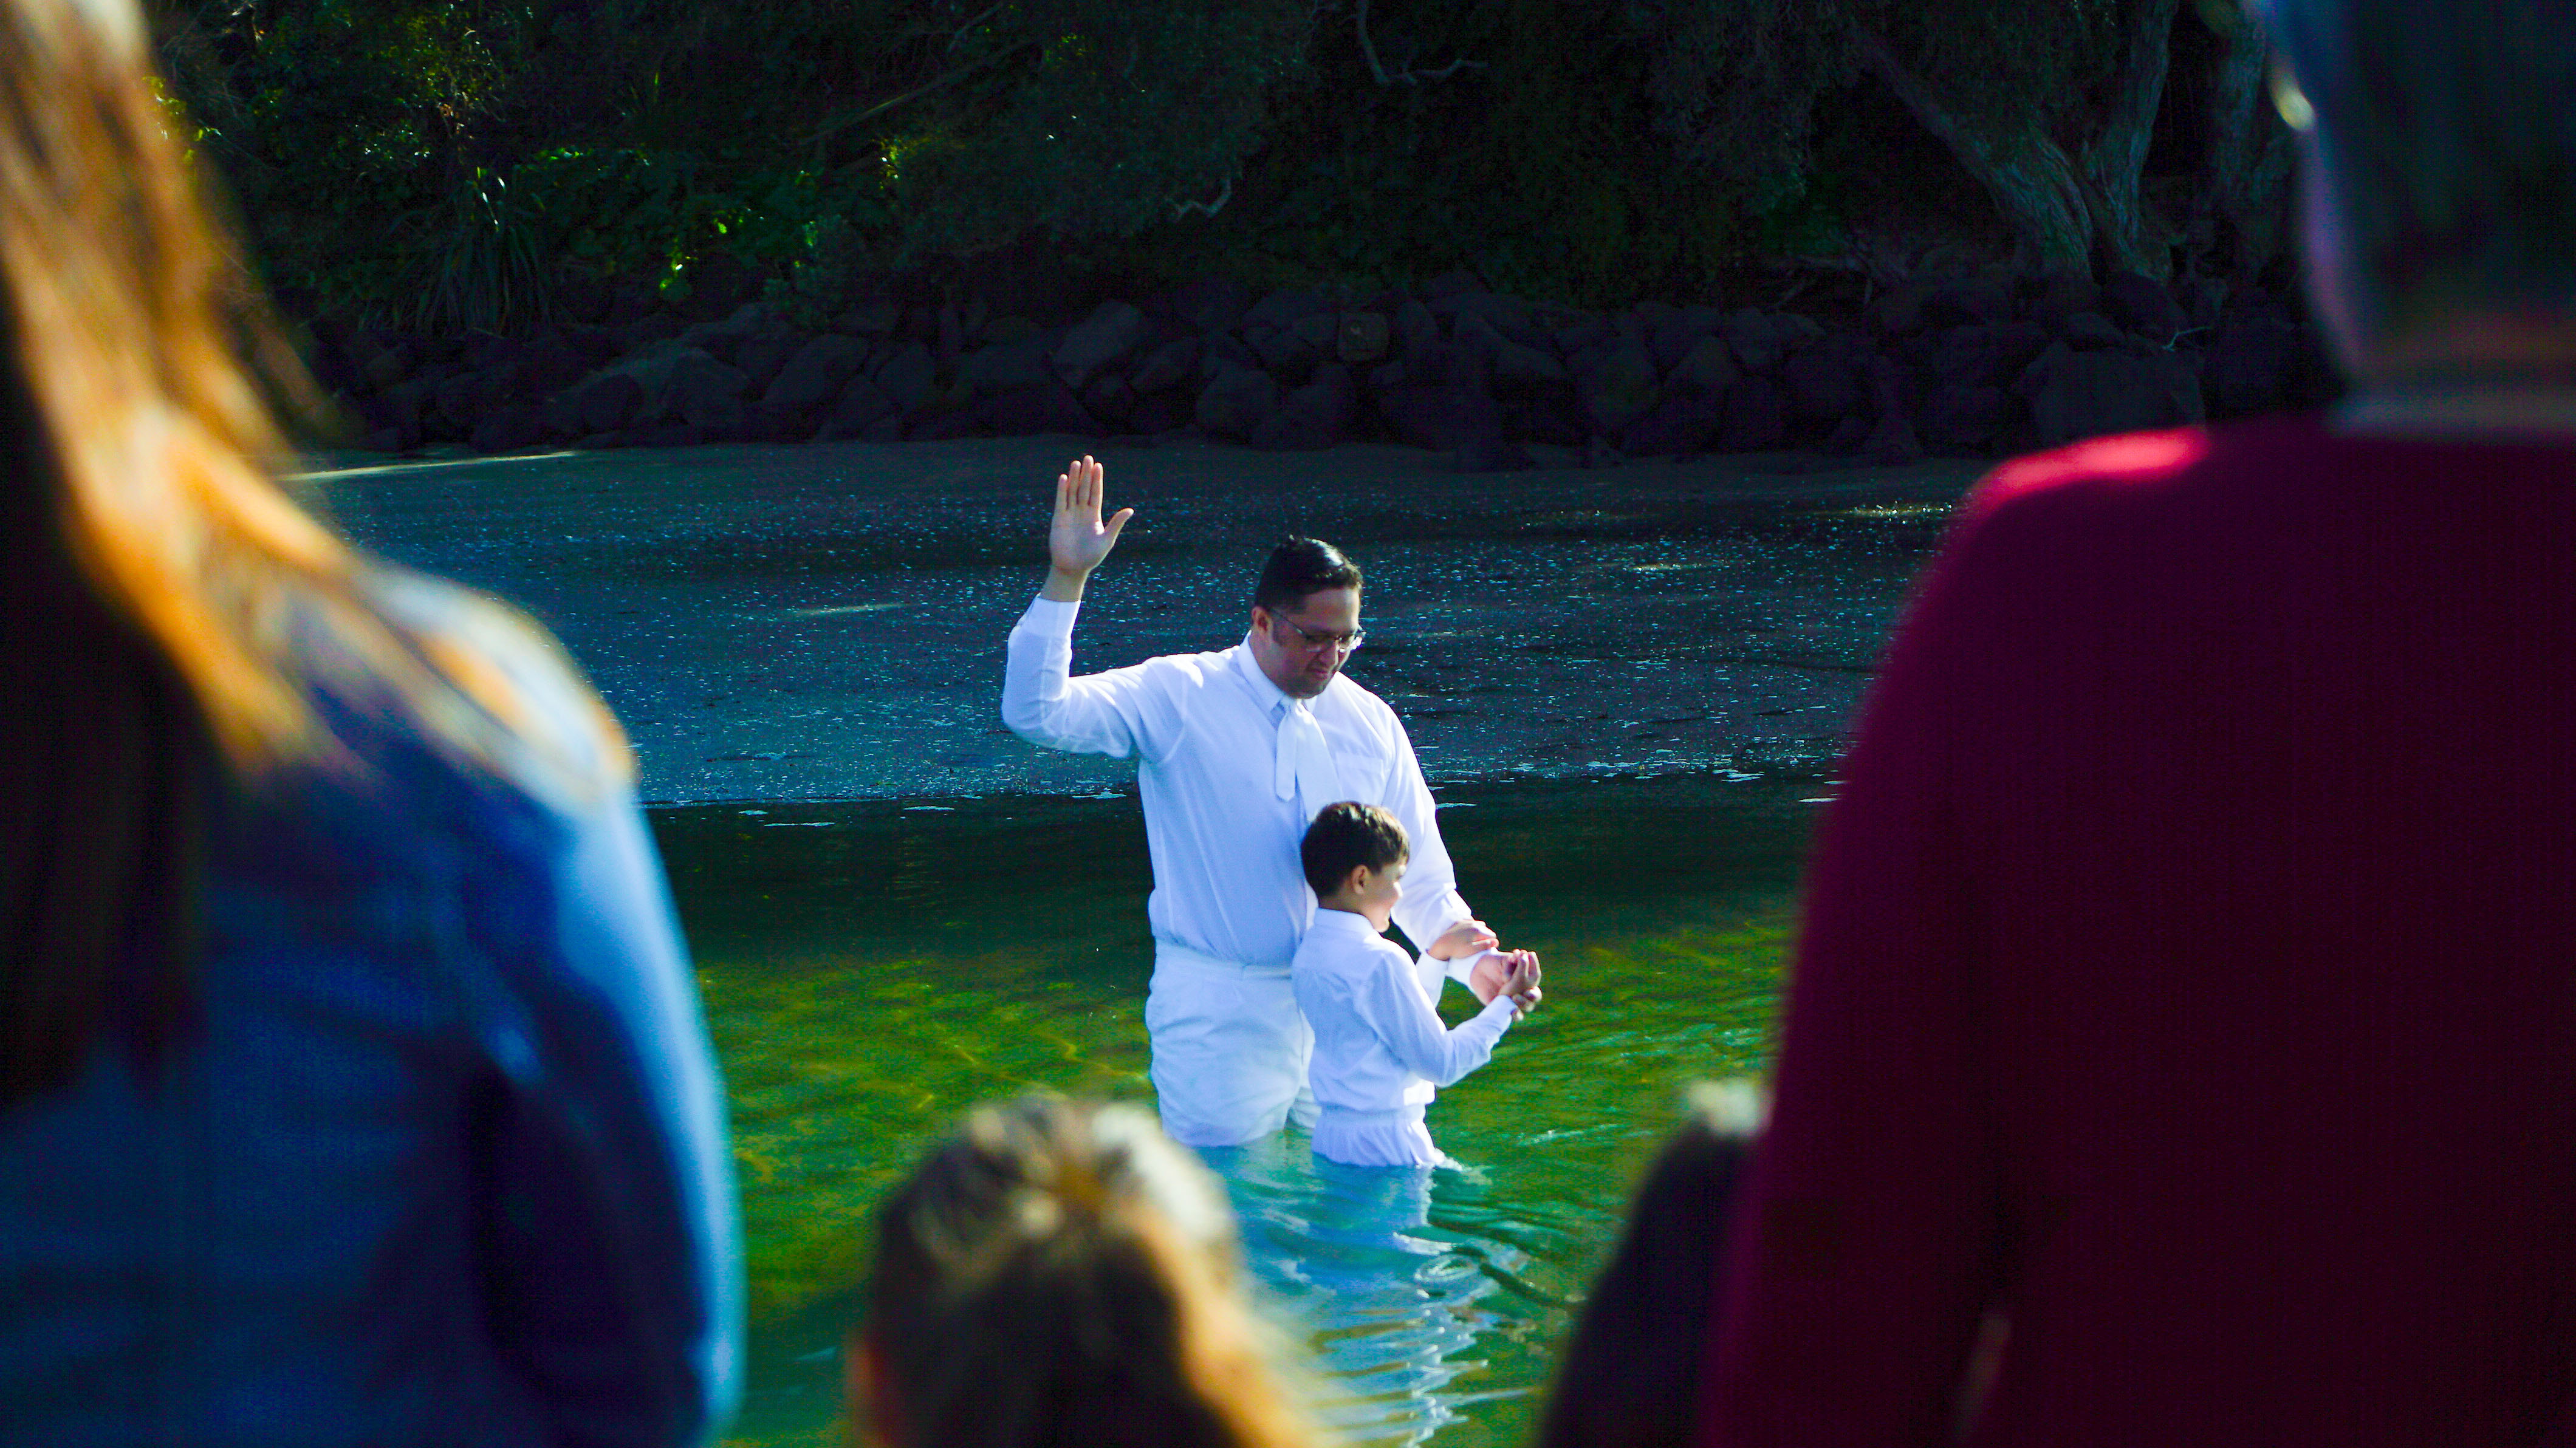 Women, youth and children who are baptized can now serve as witnesses to baptisms, the Church announced Oct. 2, 2019. Worthy temple recommend holders, including youth with limited-use recommends, can also witness baptisms in the temple. Additionally, women who are endowed can serve as witnesses to temple sealings.